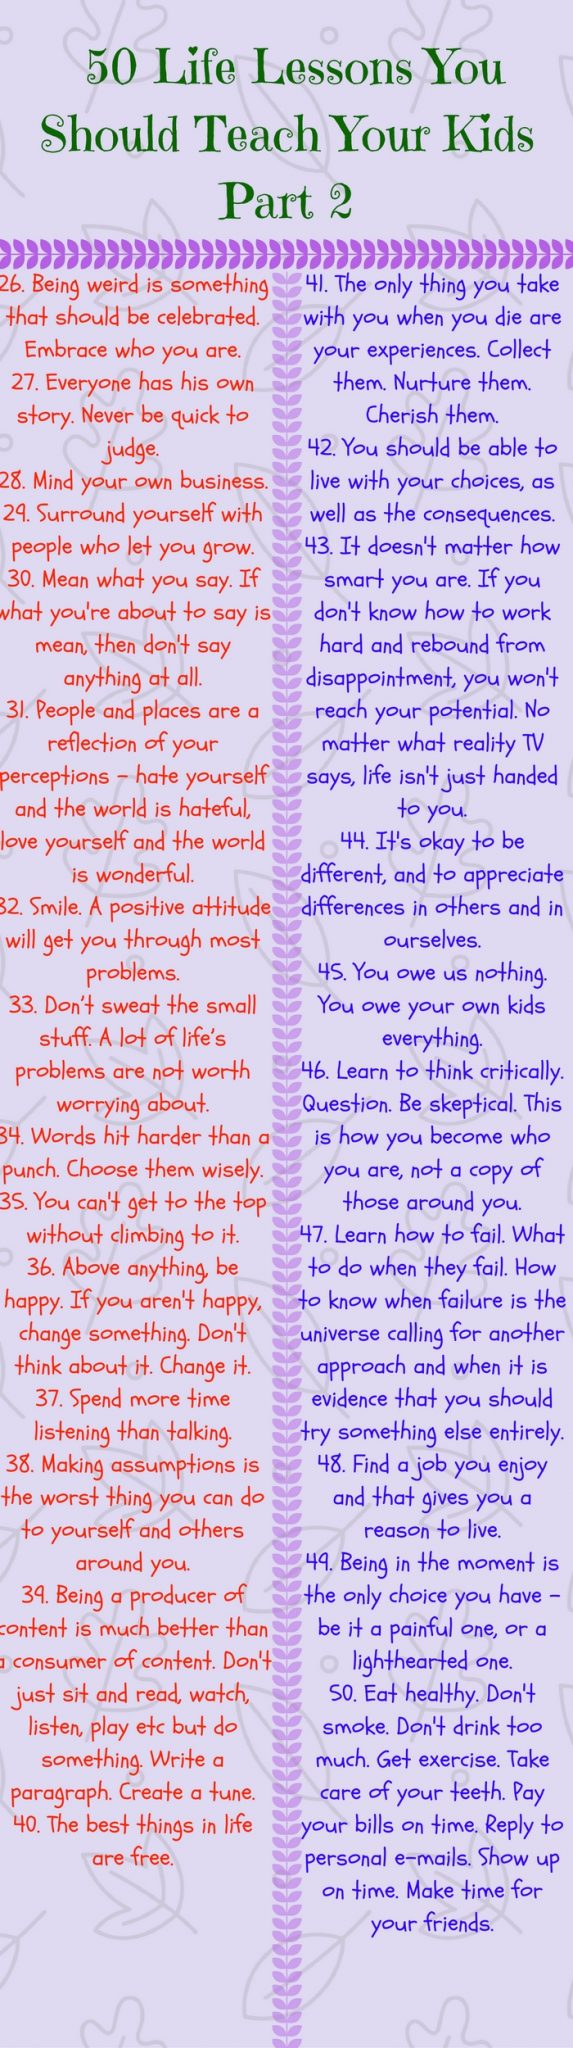 50 Life Lessons You Should Teach Your Kids Part 2